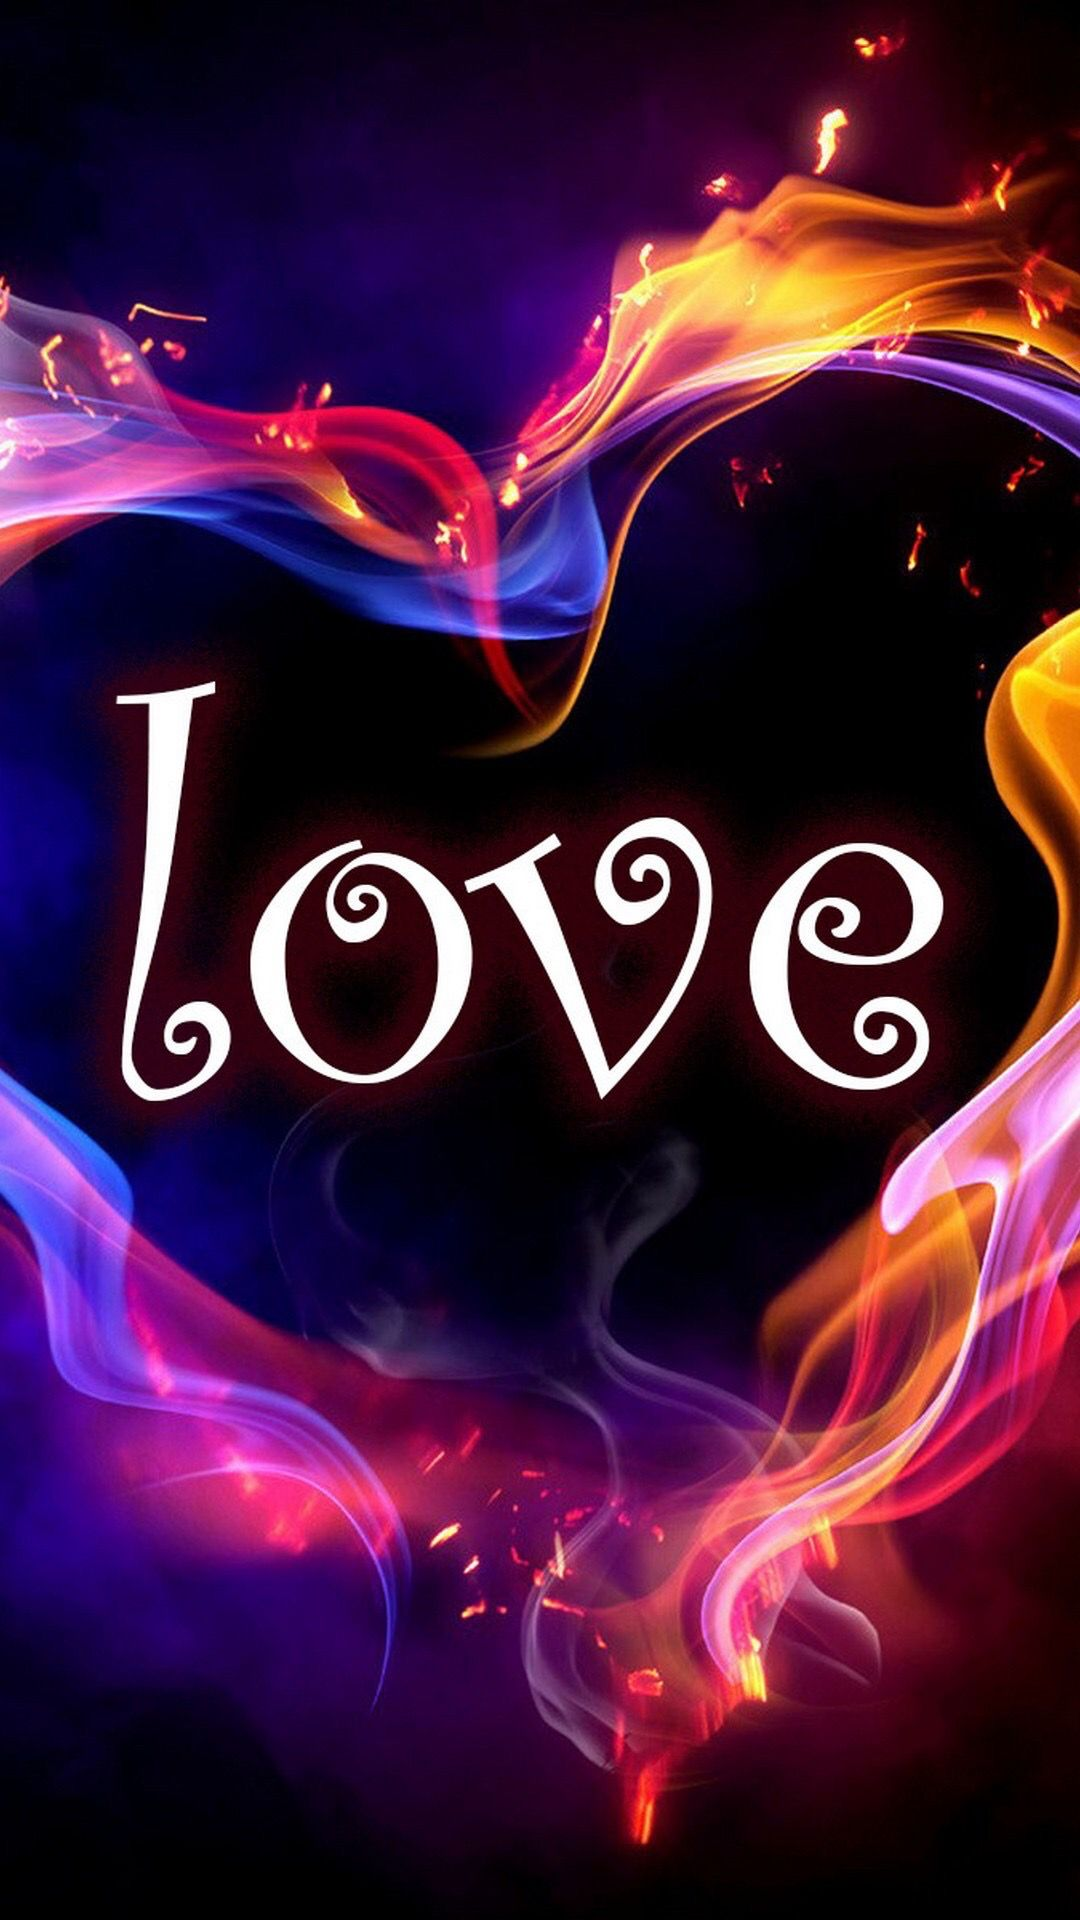 Pin By Queen Addie On Love Junk Love Wallpaper For Mobile Love Wallpaper Download Android Wallpaper Love